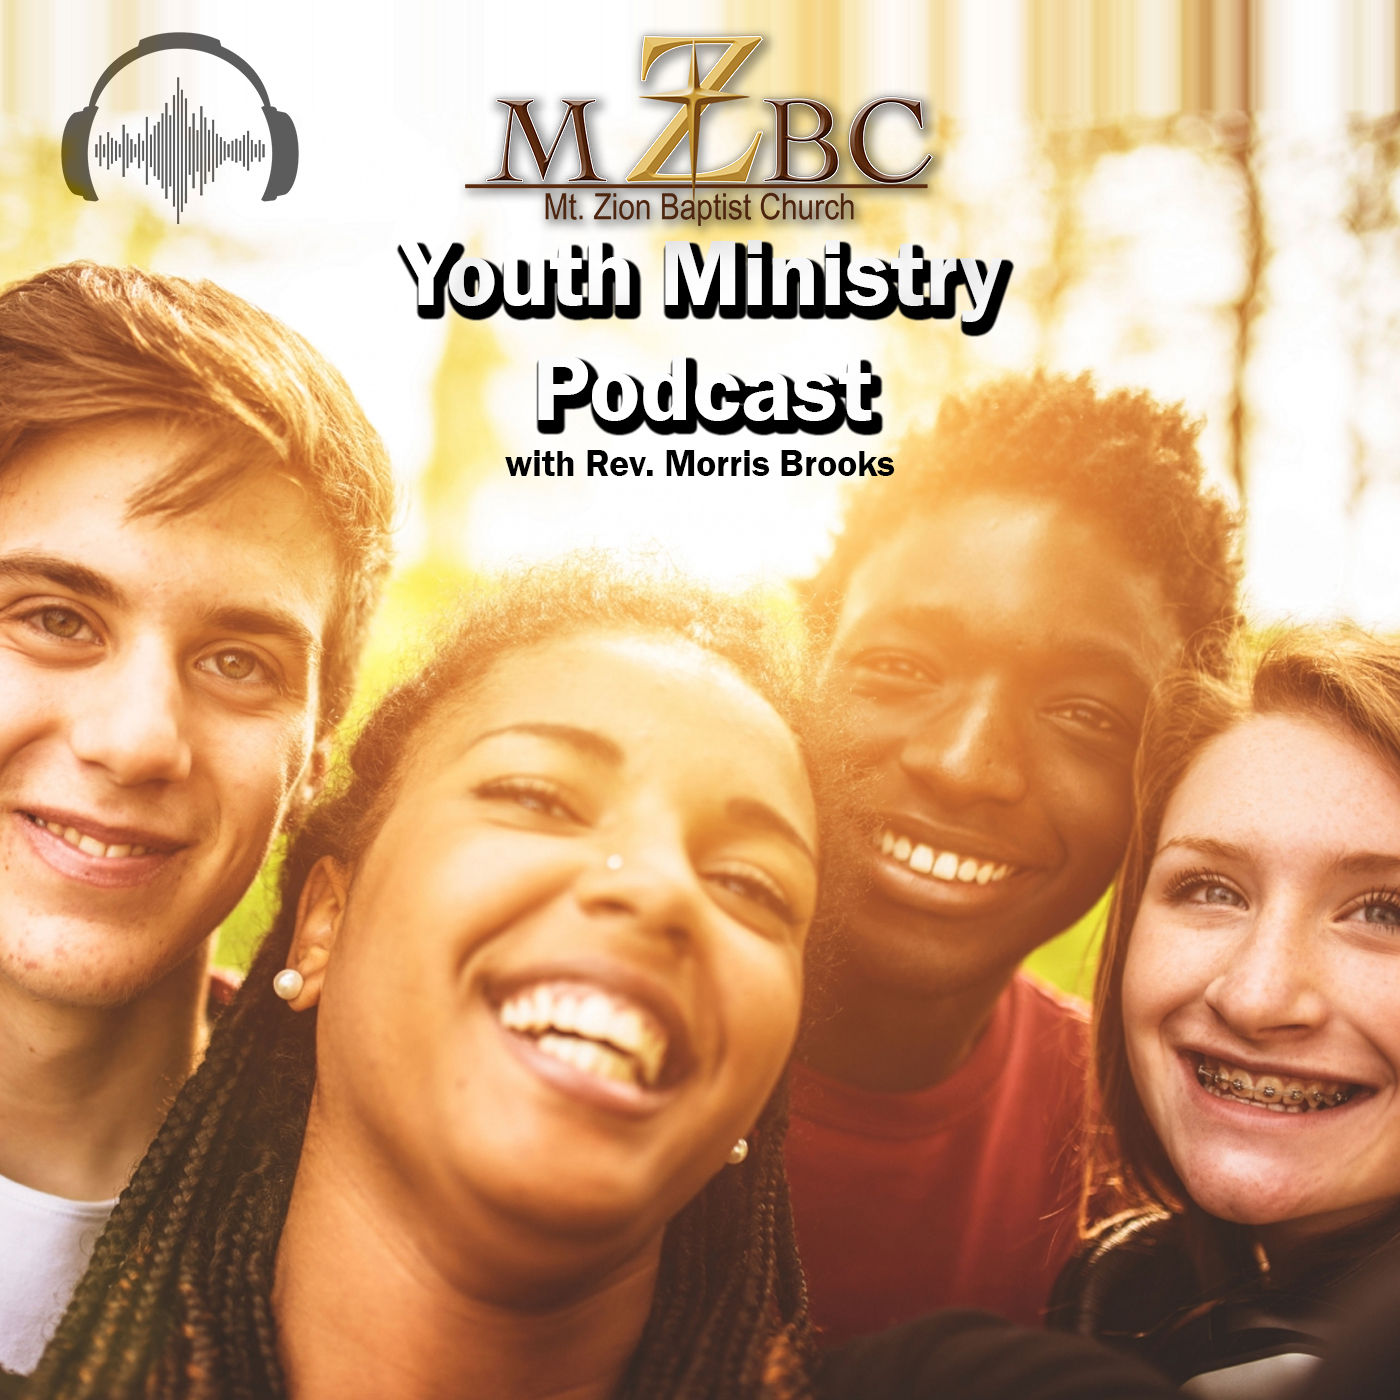 Mt. Zion Kalamazoo Youth Ministry Podcast